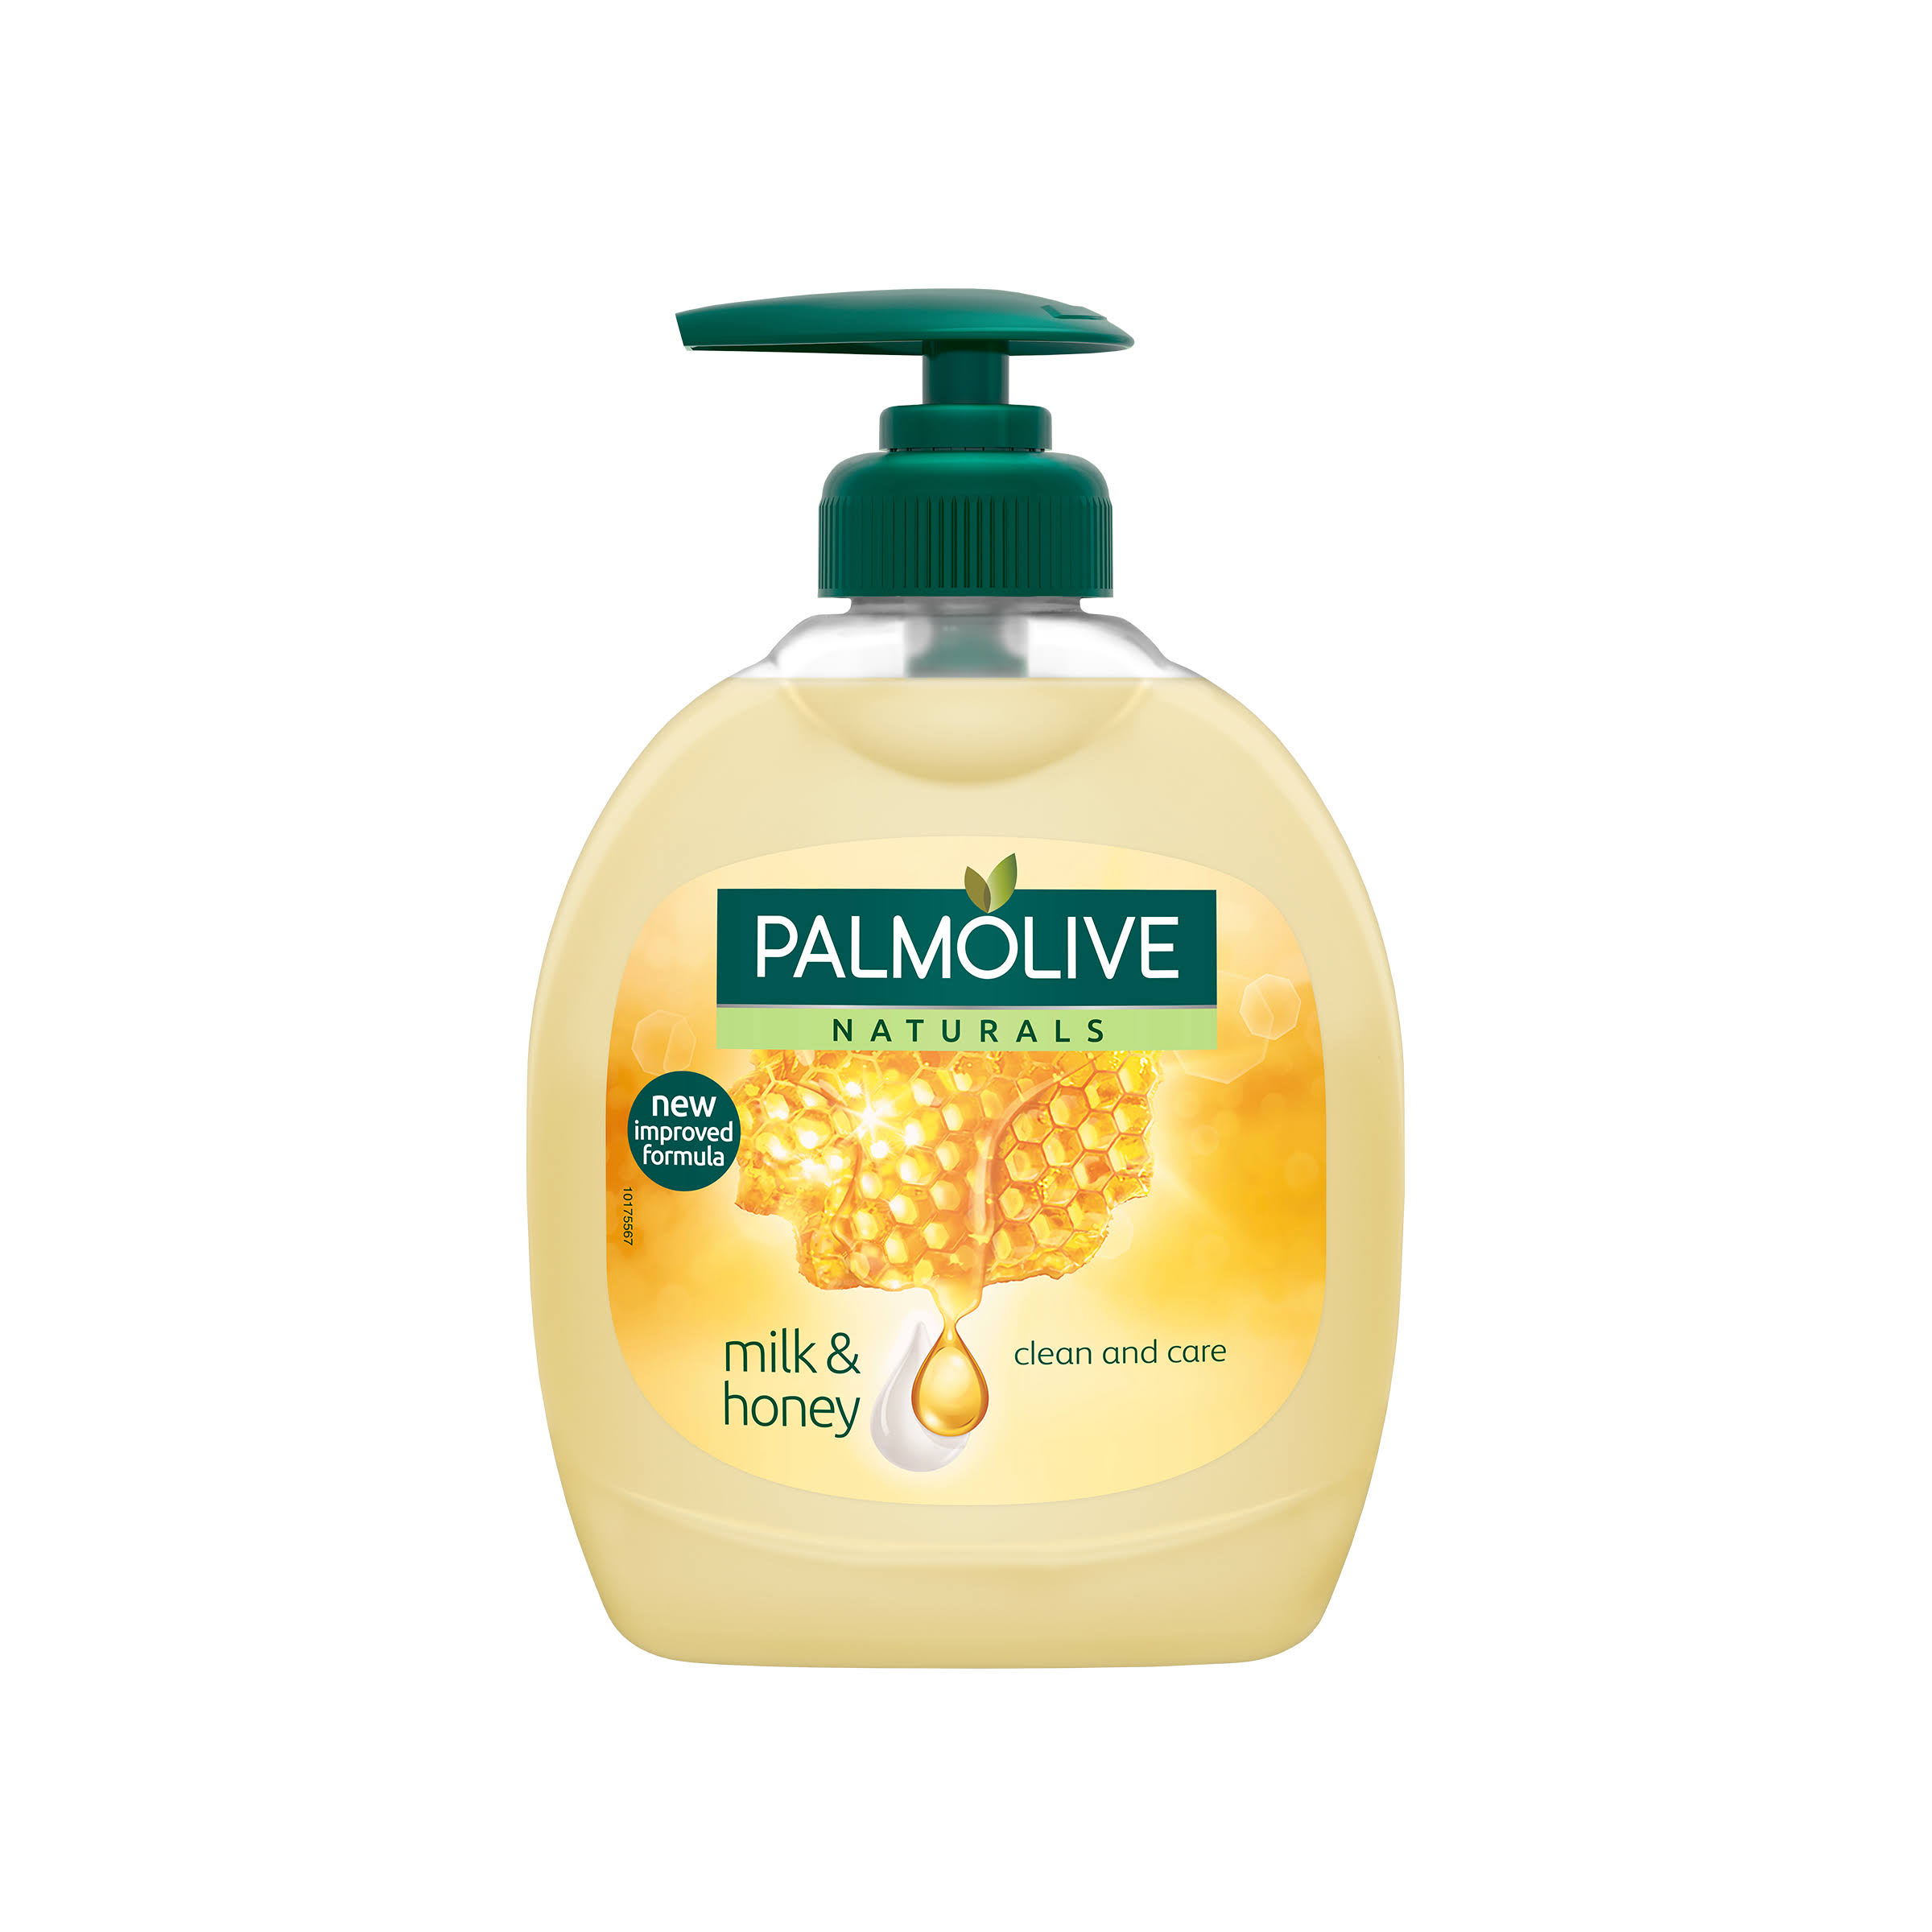 Palmolive Naturals Liquid Handwash - 300ml, Milk & Honey